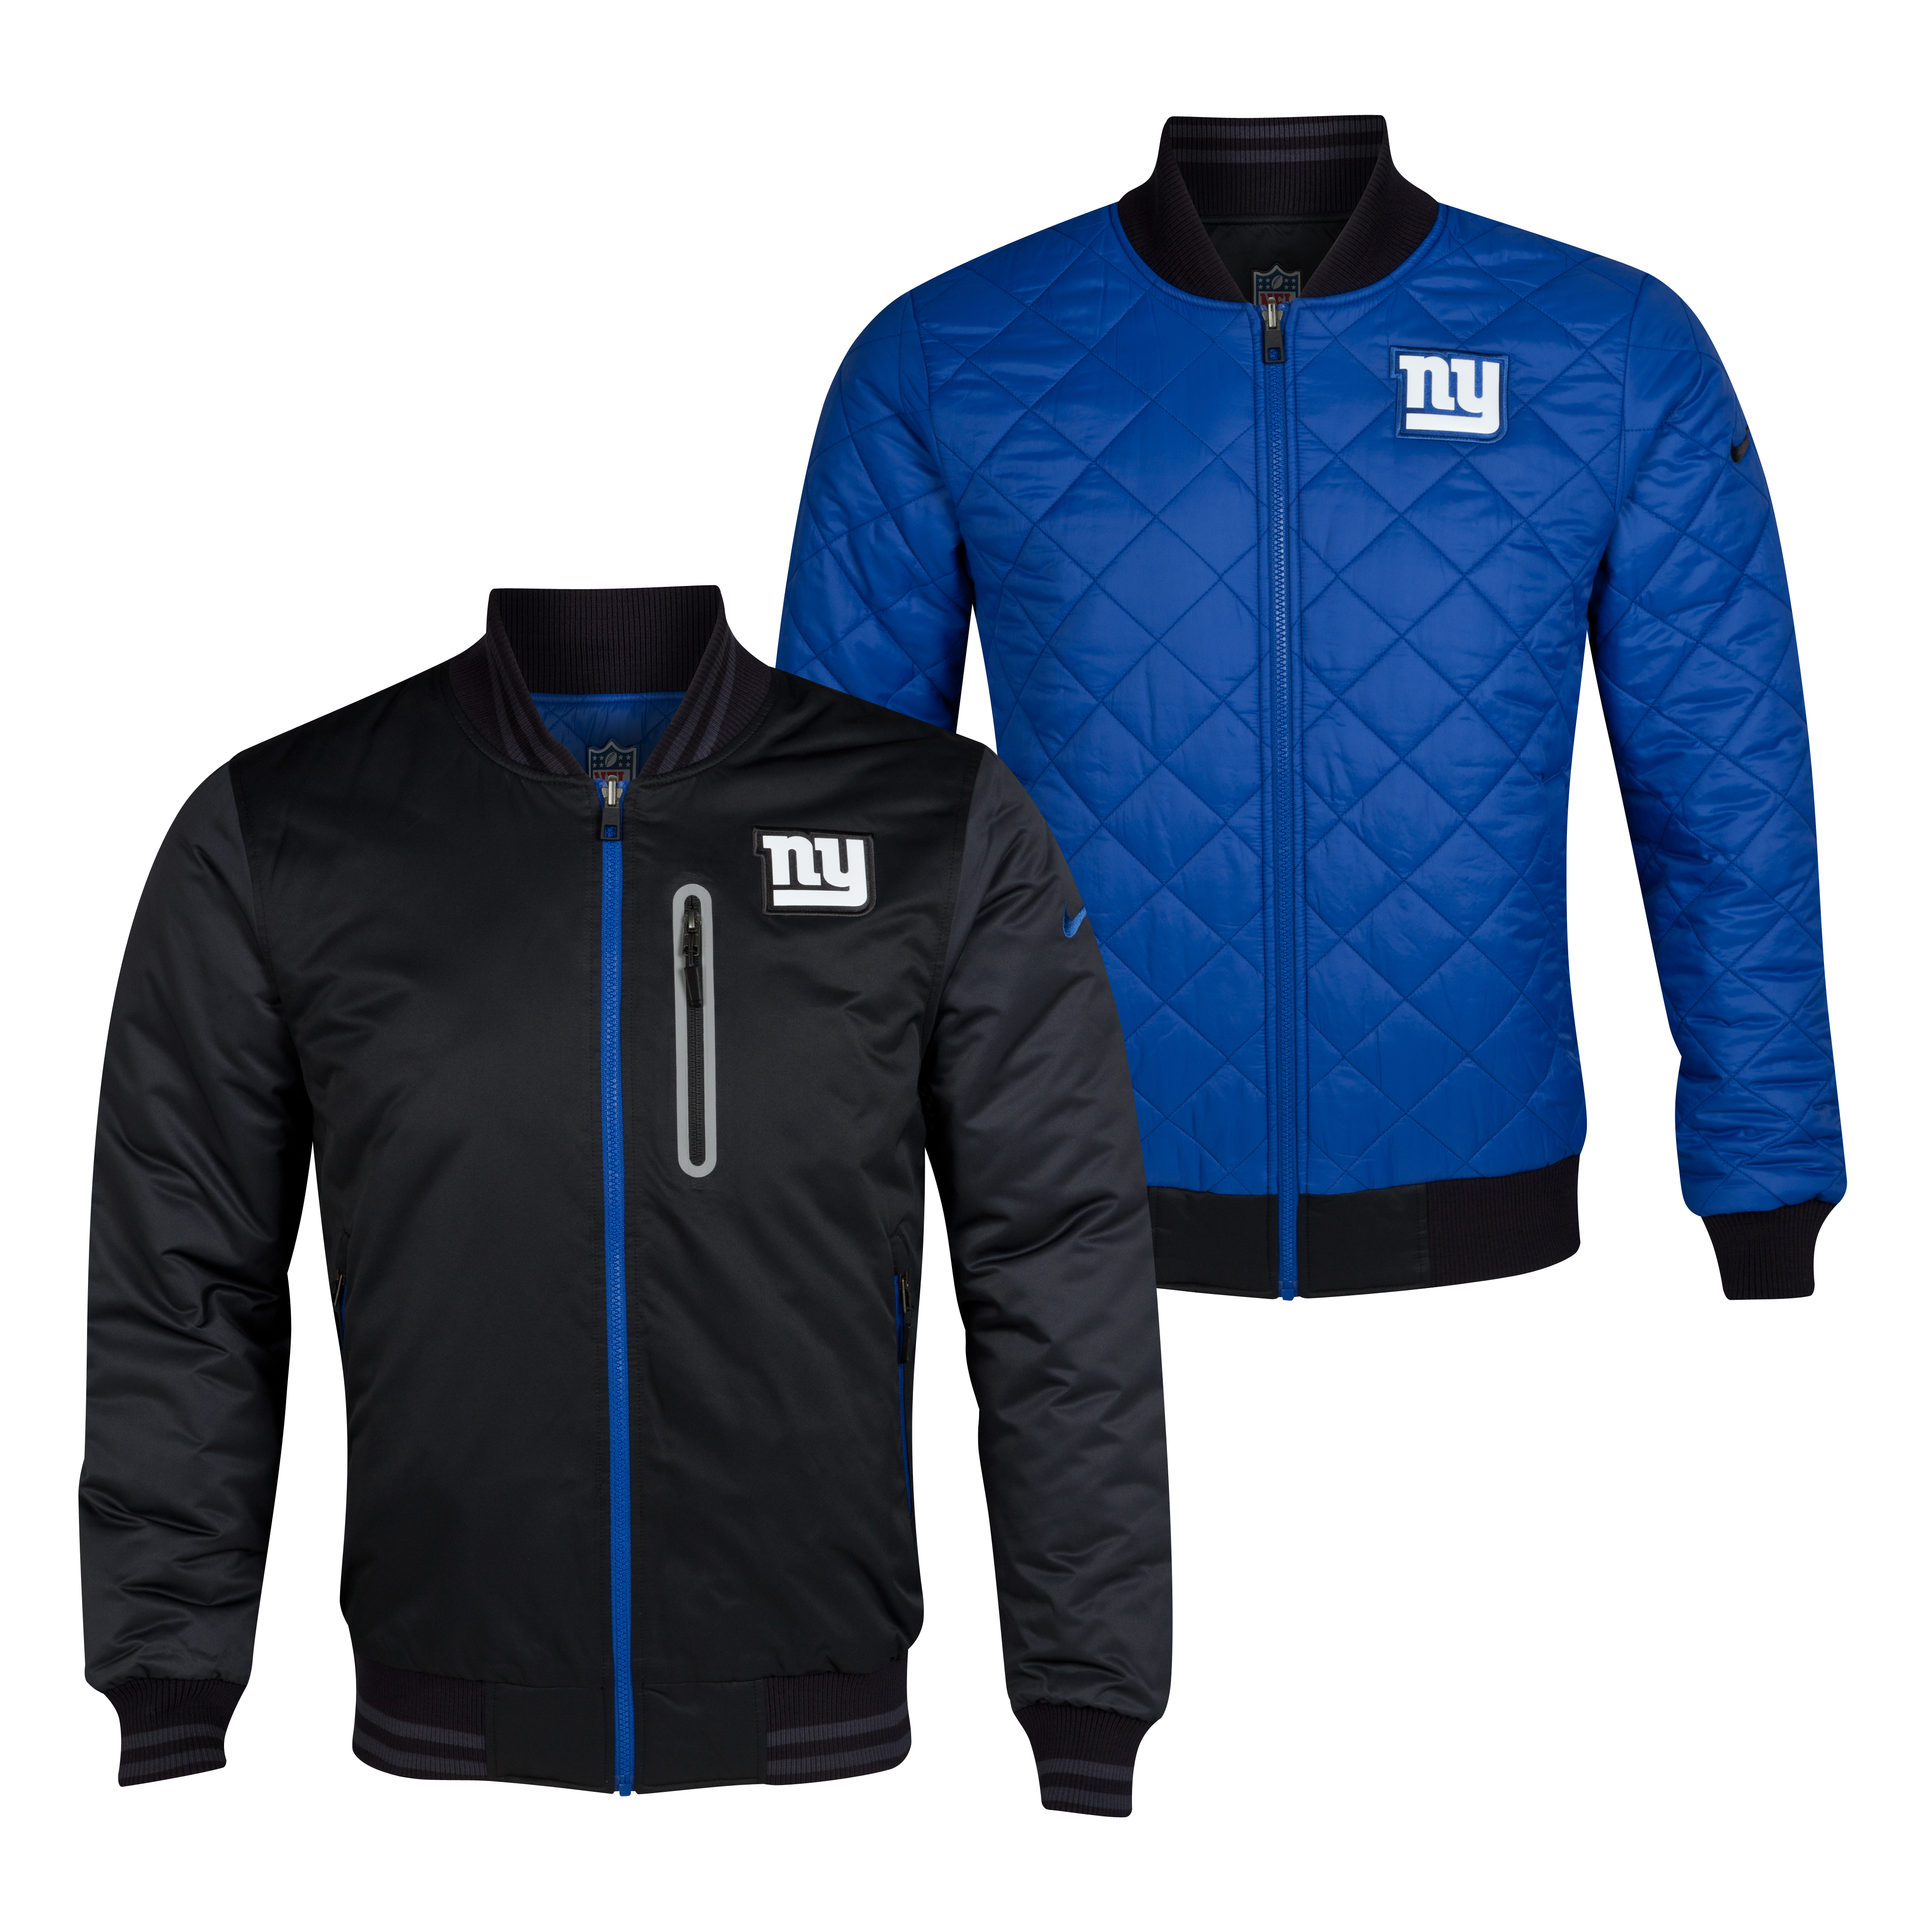 New York Giants Destroyer Jacket - Black